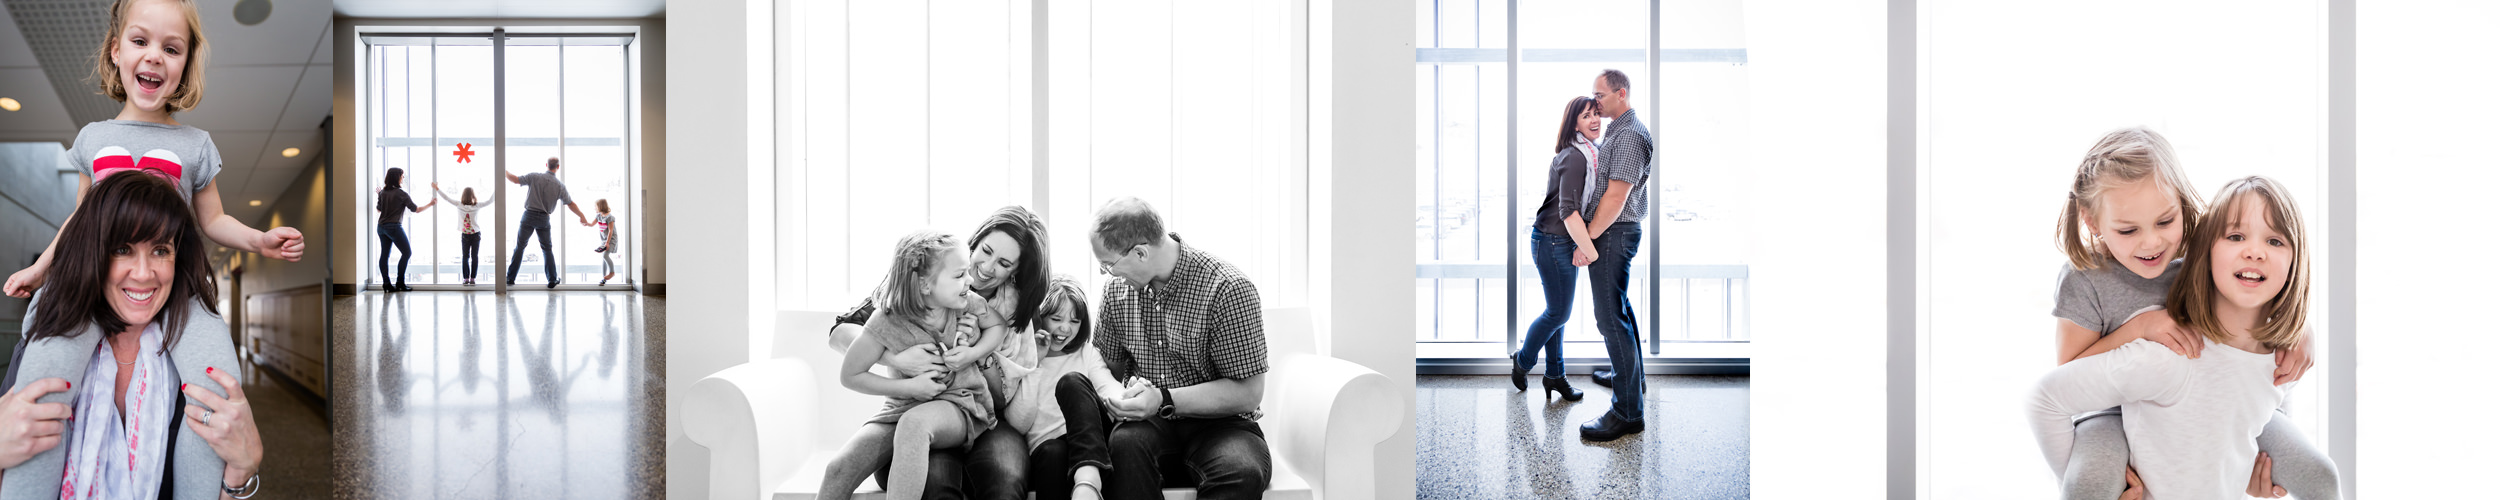 family_adventure_photography_session_collage_by_hunnicutt_photography.jpg